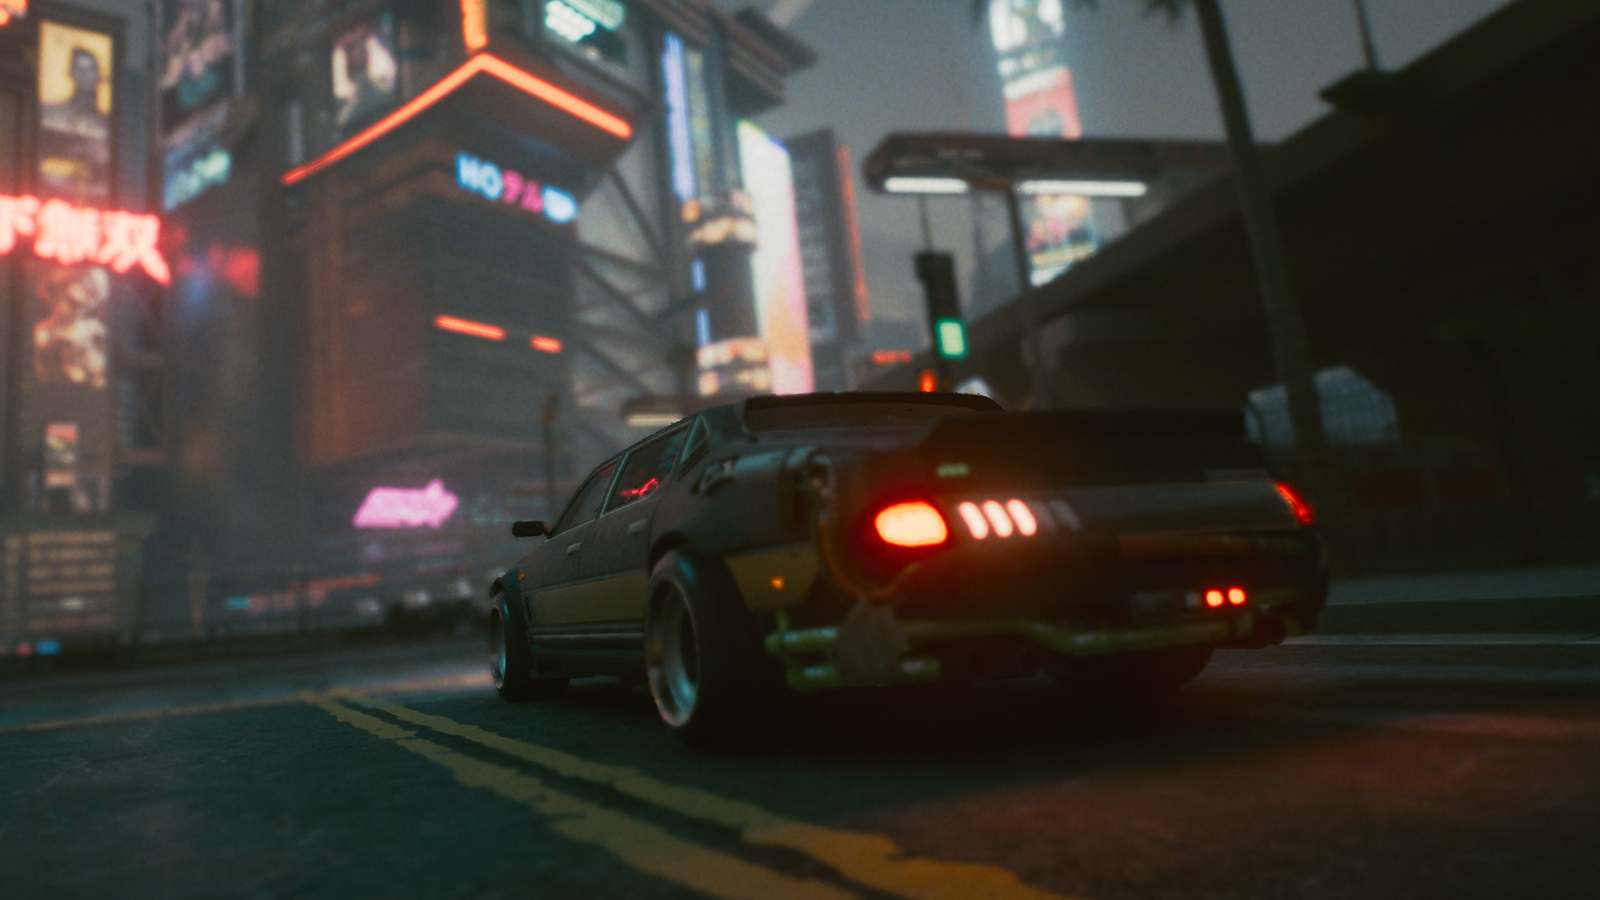 A car driving through Night City at night time in Cyberpunk 2077